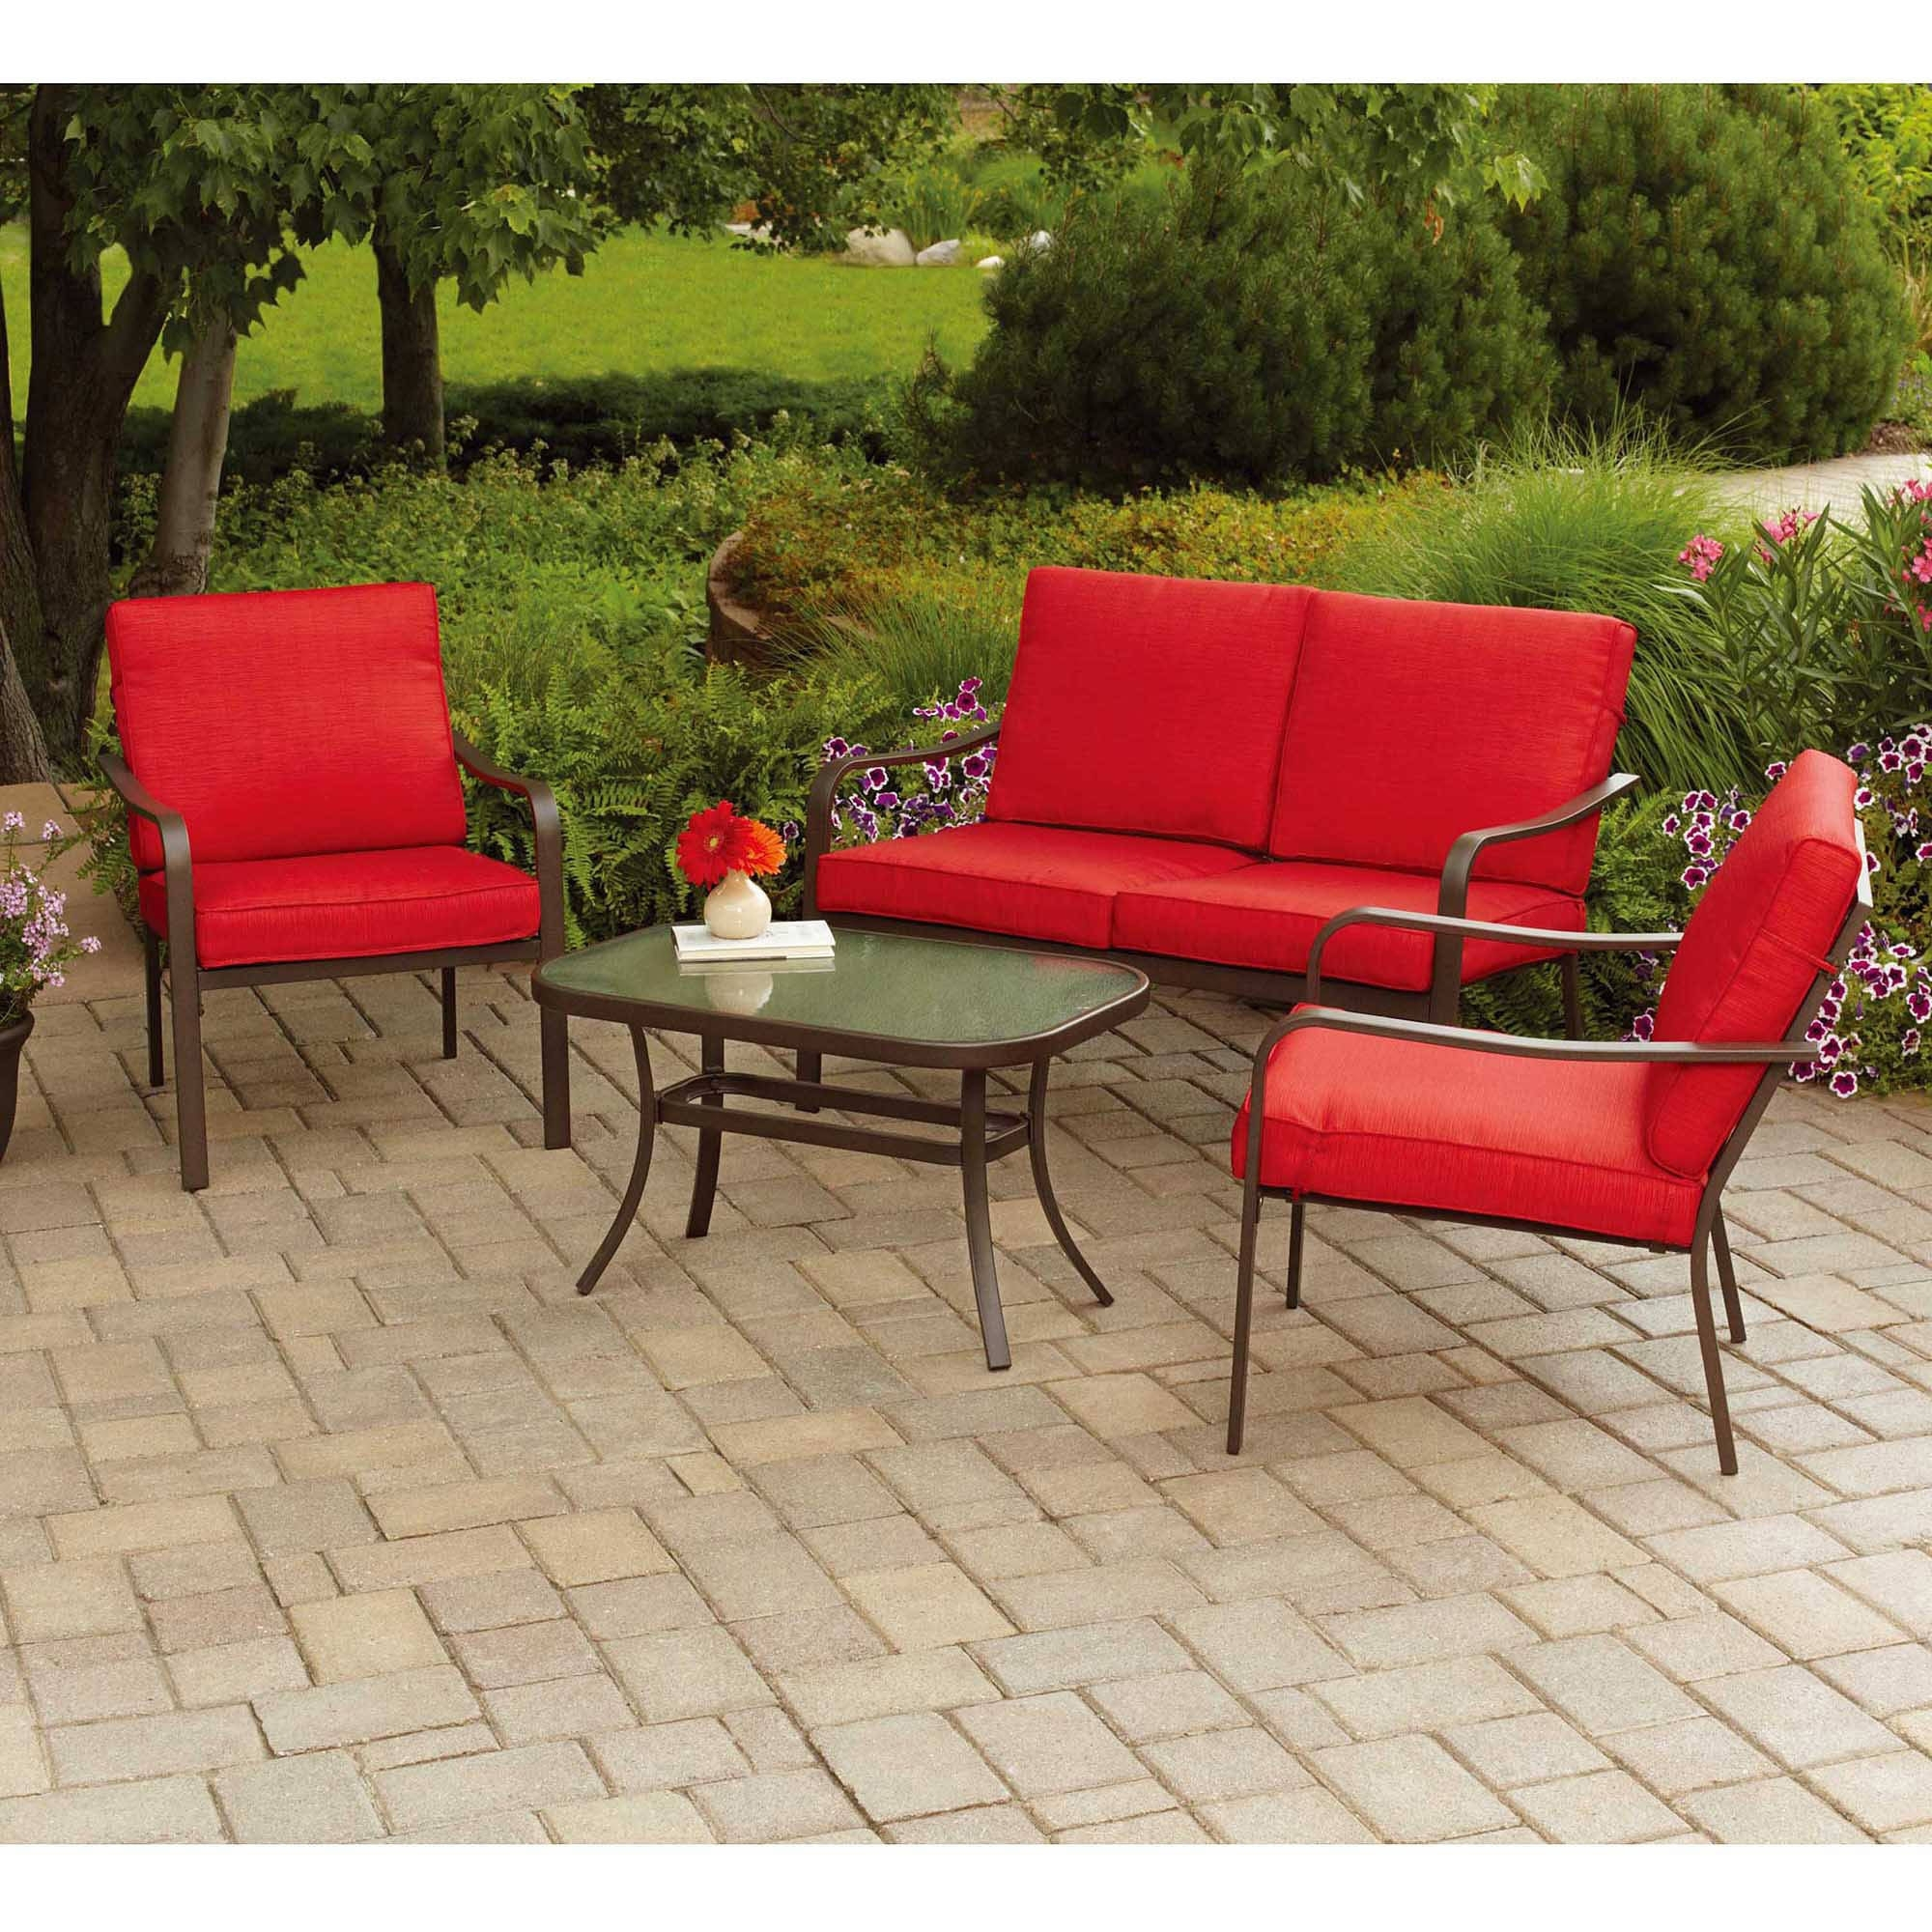 Mainstays Stanton Cushioned 4 Piece Patio Conversation Set, Seats 4 Intended For Fashionable Ebay Patio Conversation Sets (View 11 of 20)